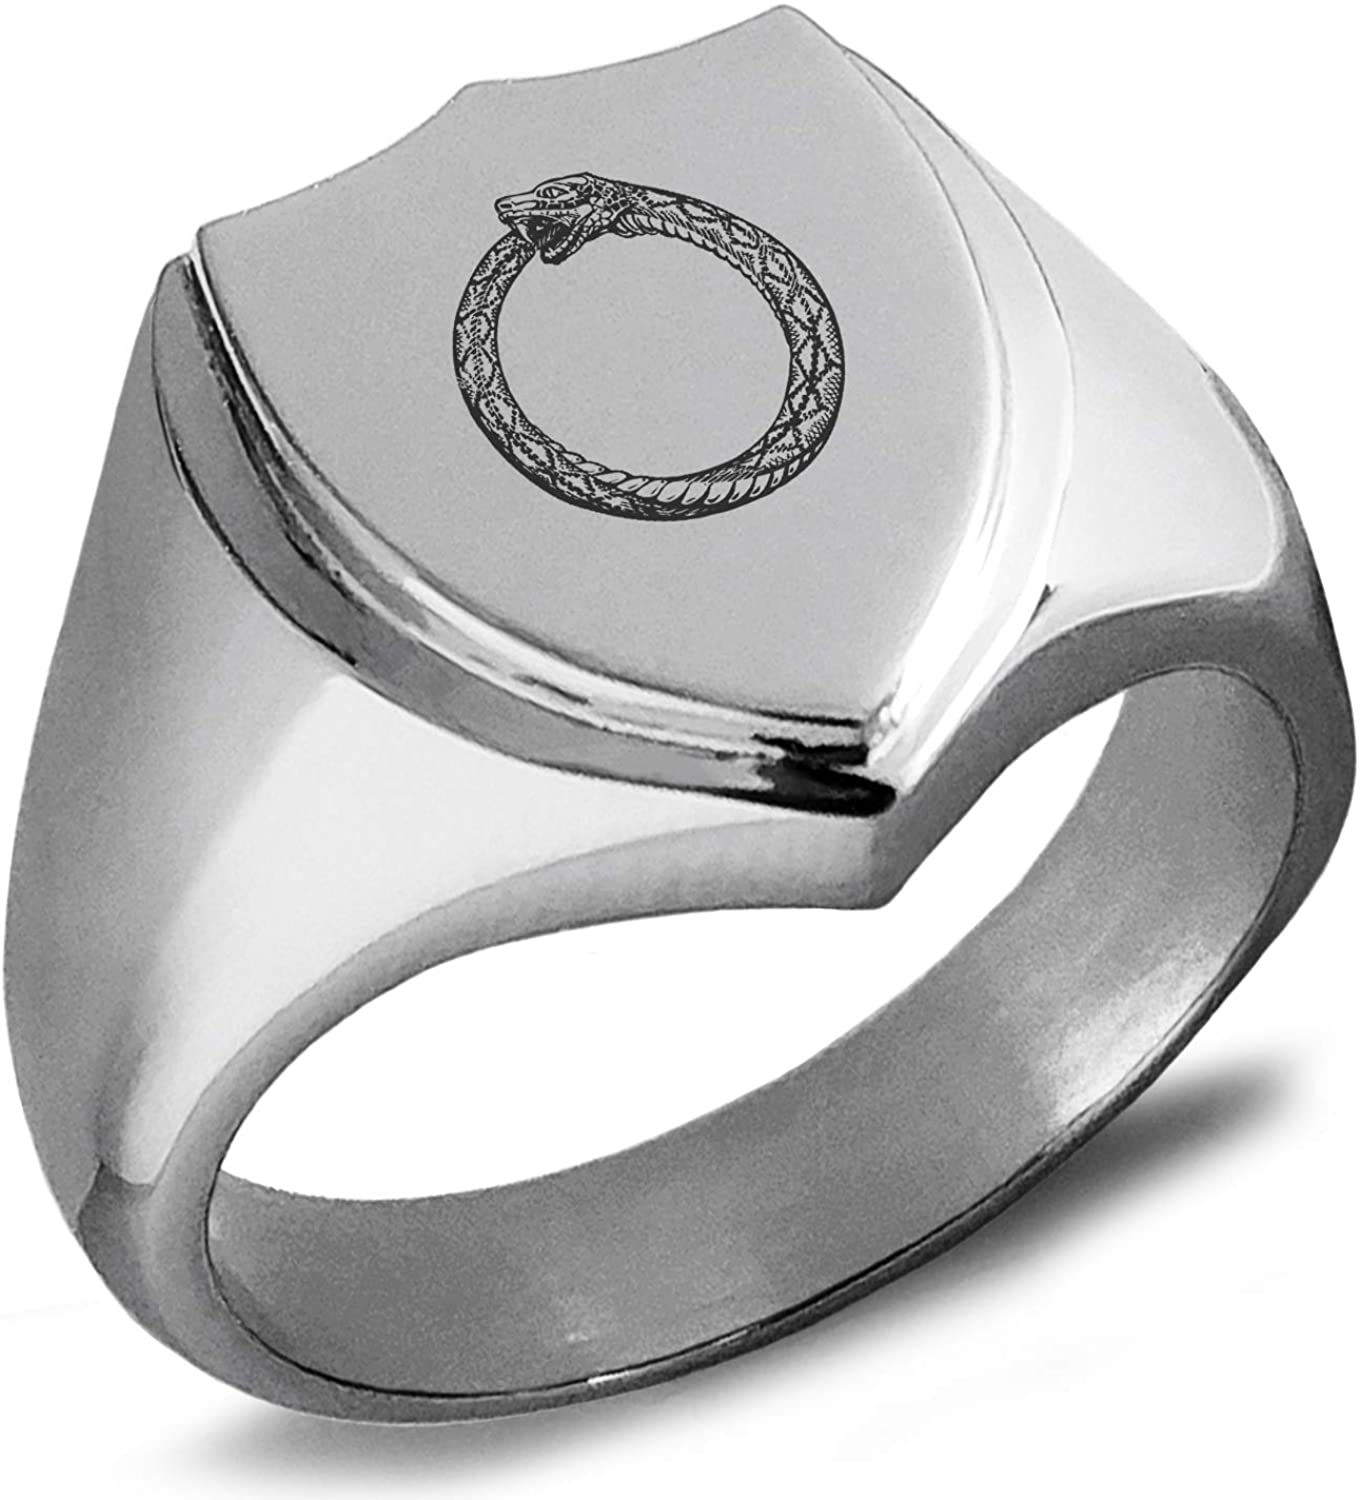 Silver Square Shaped JEWURA Biker Ring Fashion Stainless Steel Jewelry